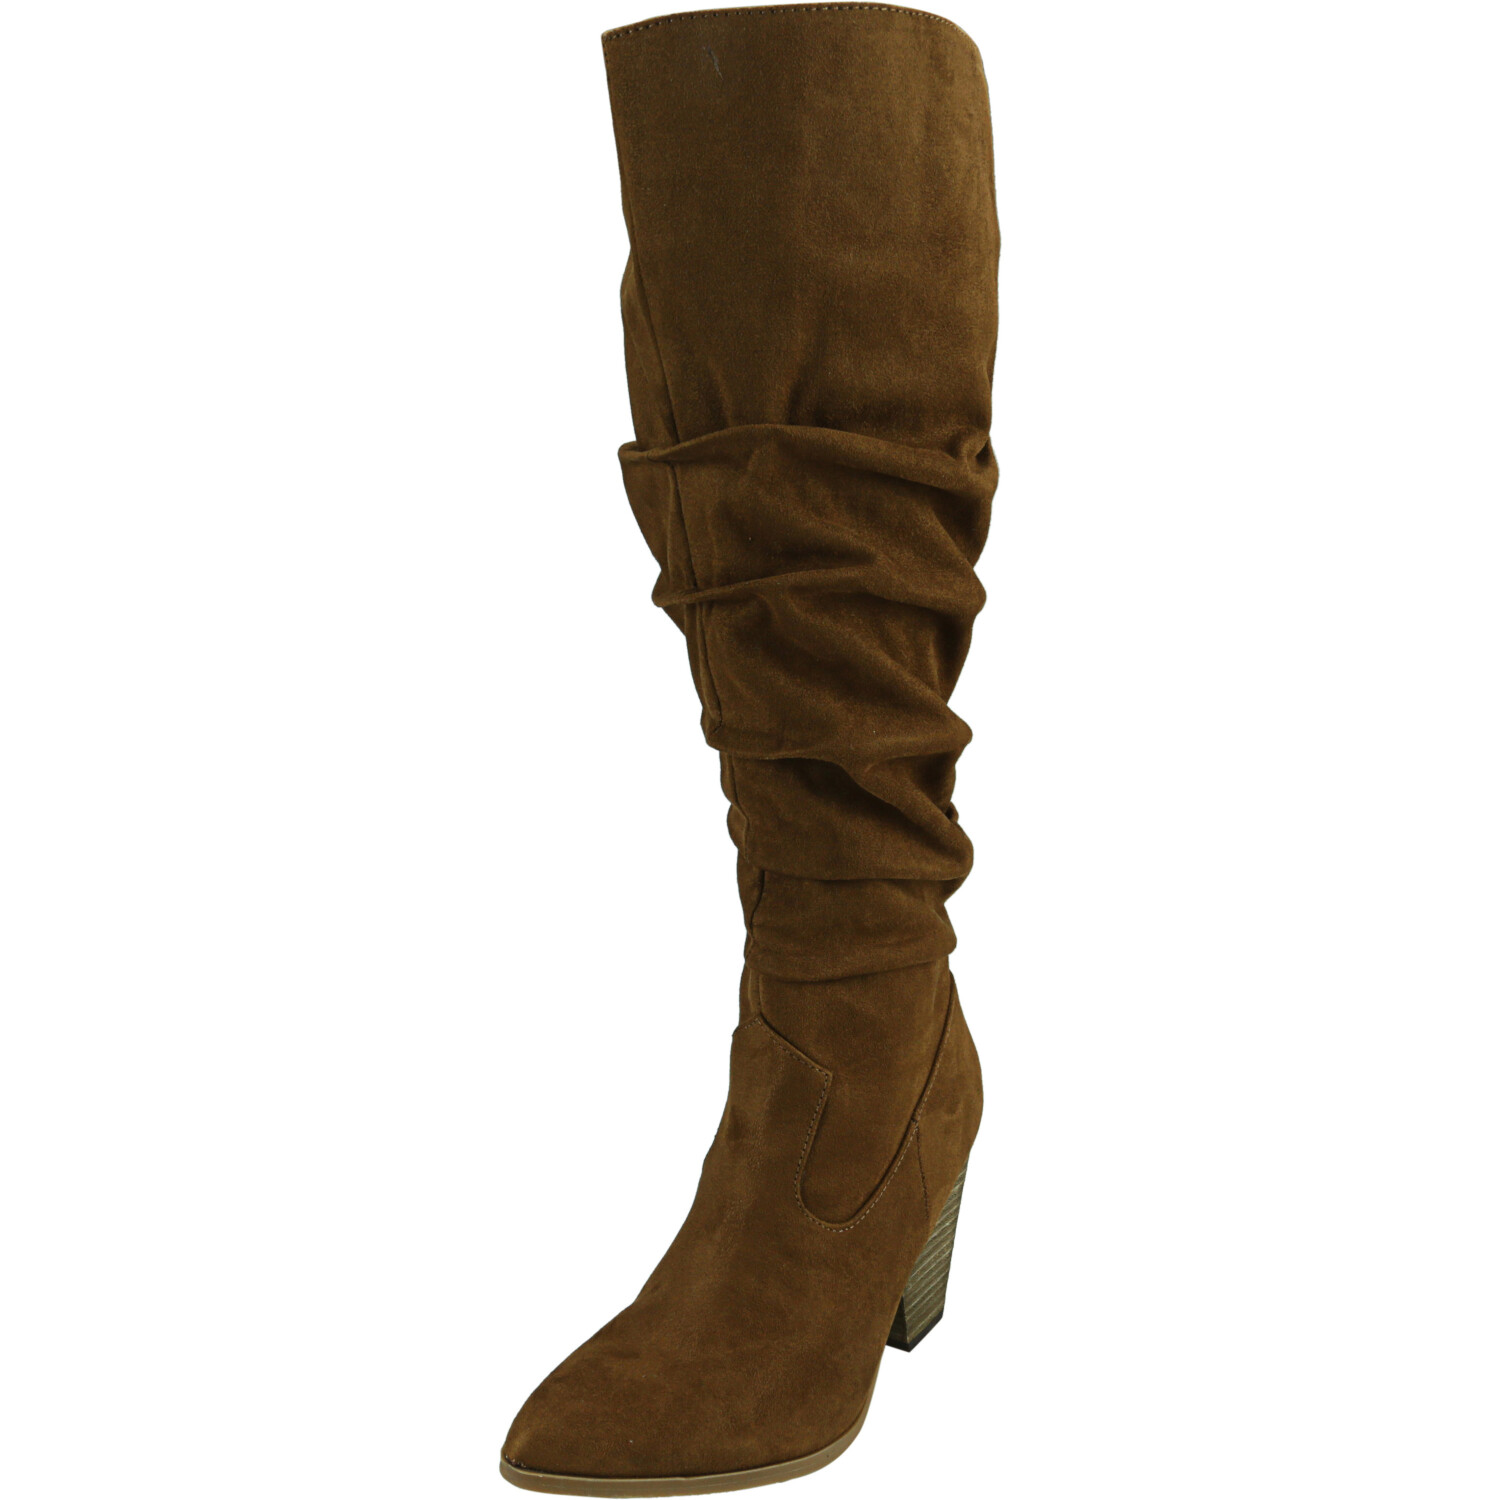 Carlos By Santana Women's Peyton Woodstock Knee-High Suede Boot - 8M